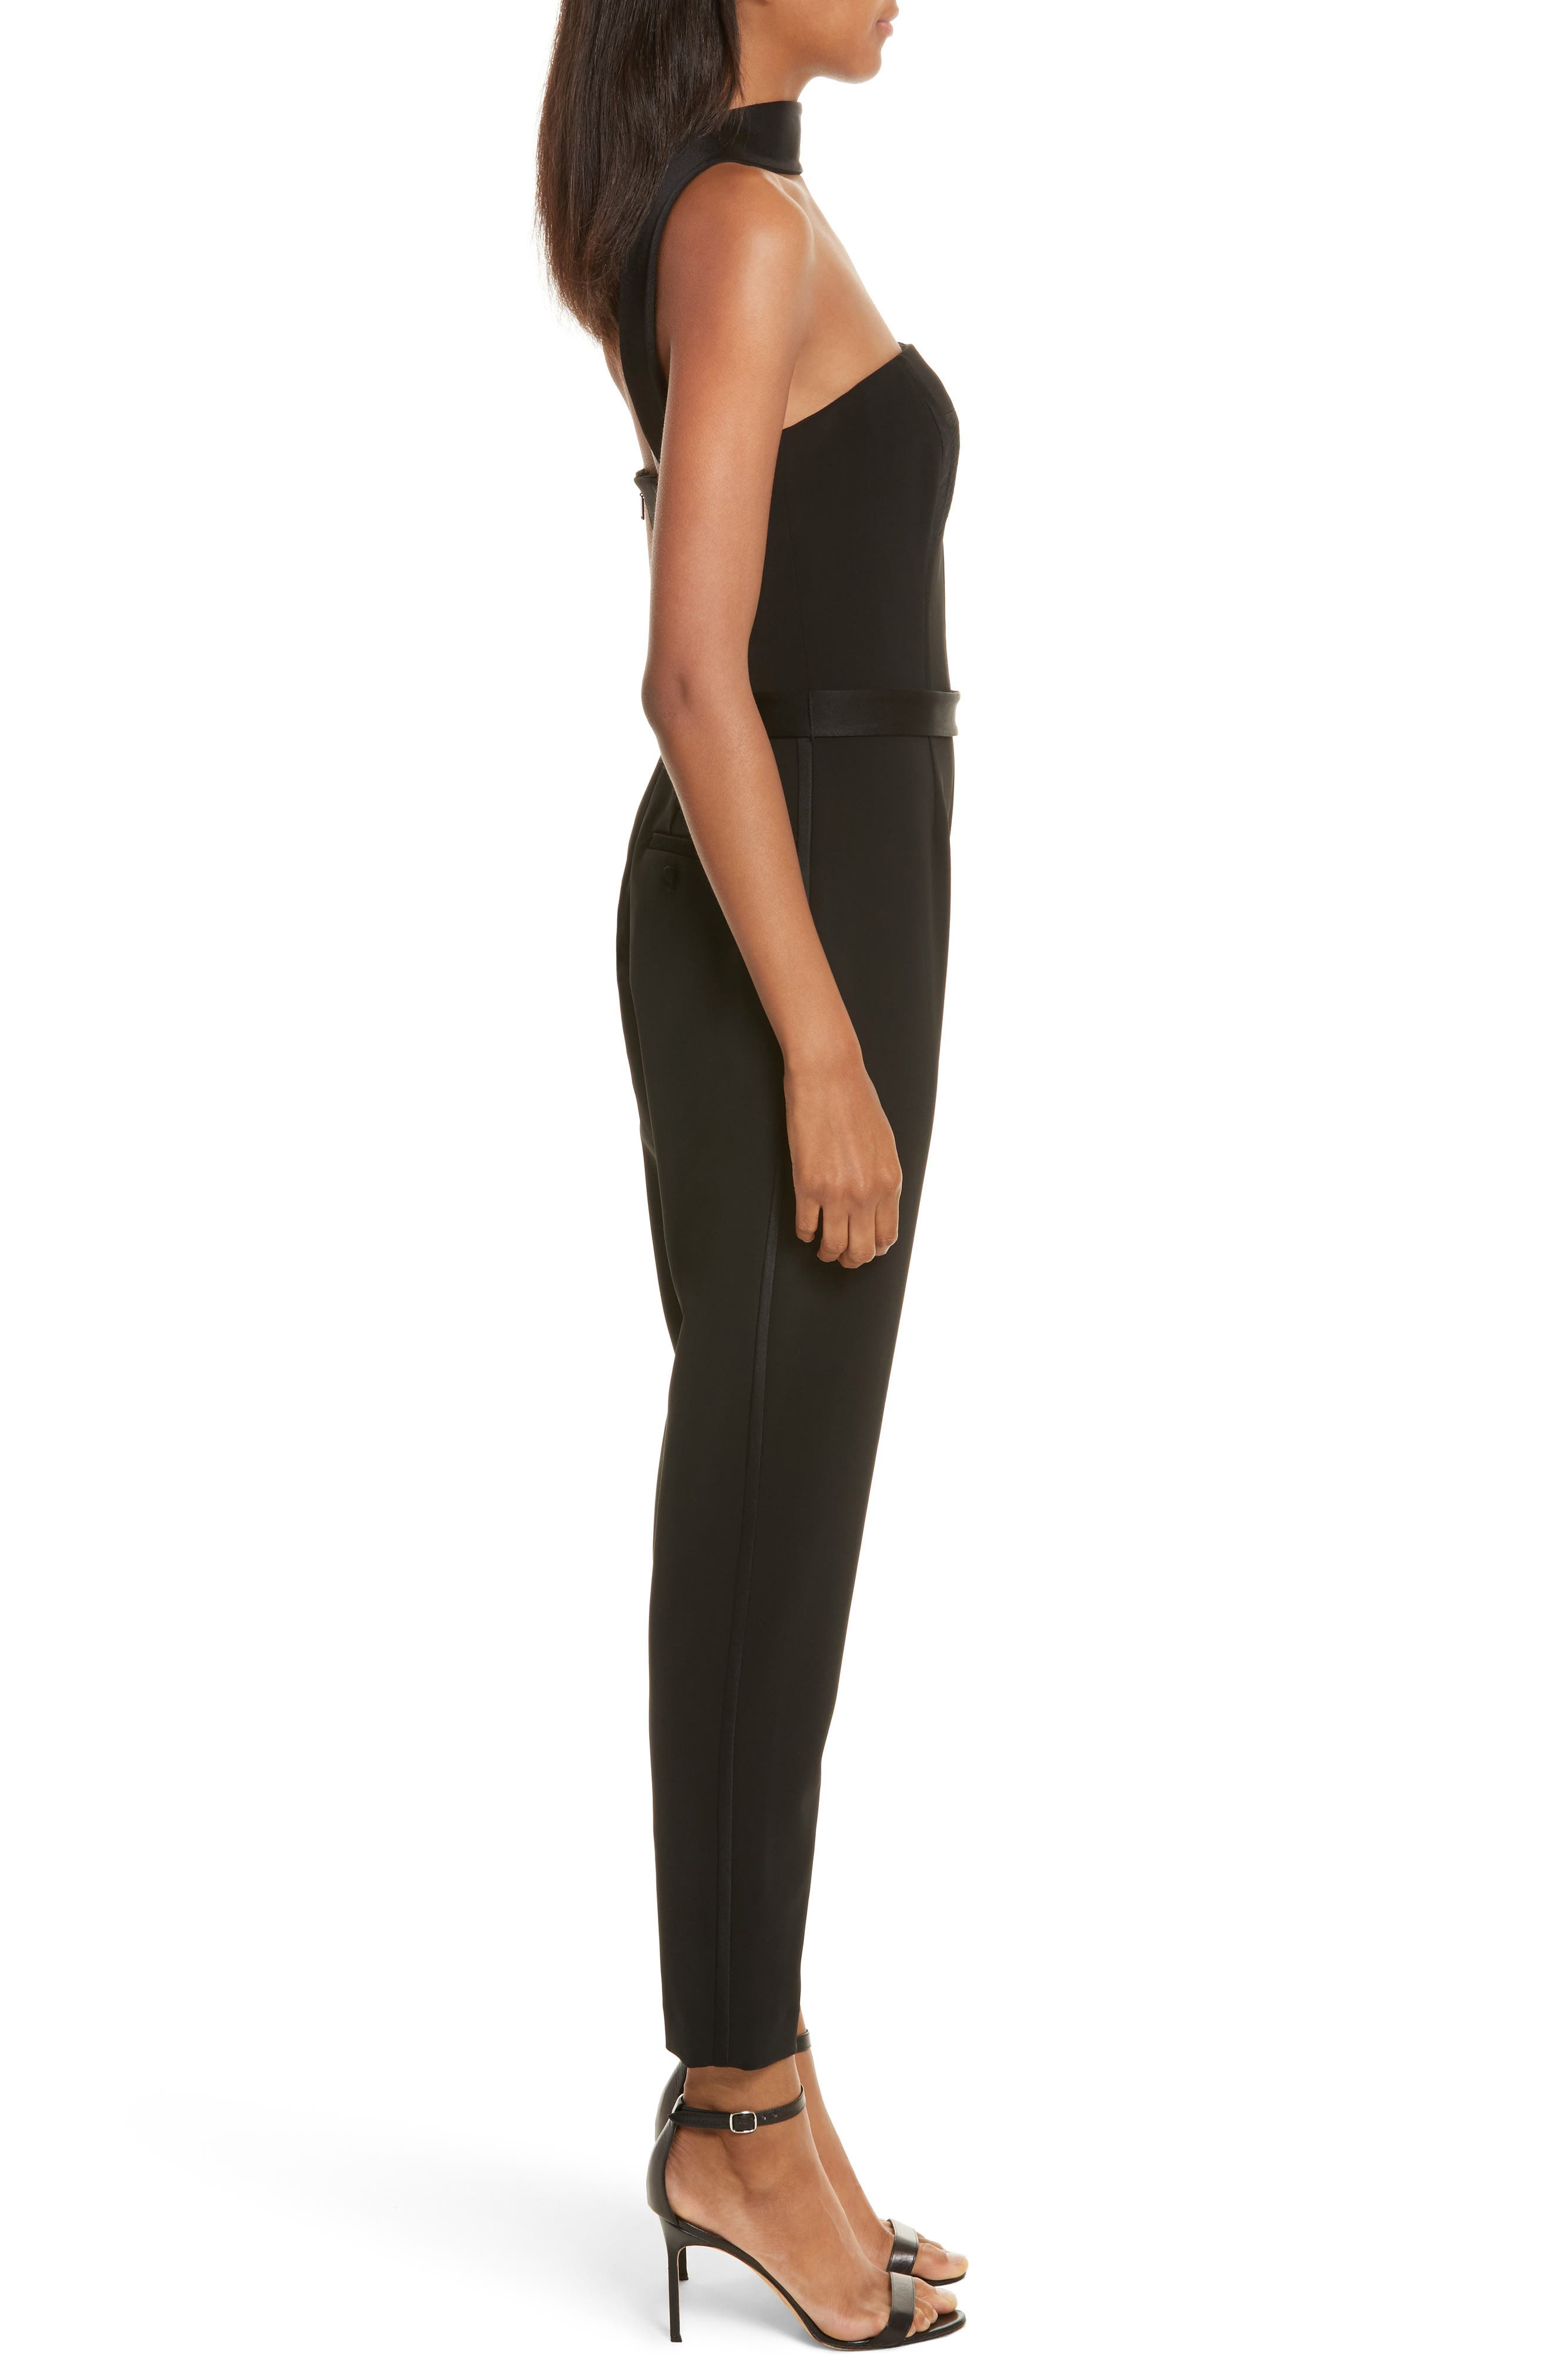 Diane Kruger x GREY Jason Wu Crepe Straight Leg Jumpsuit,                             Alternate thumbnail 3, color,                             Black